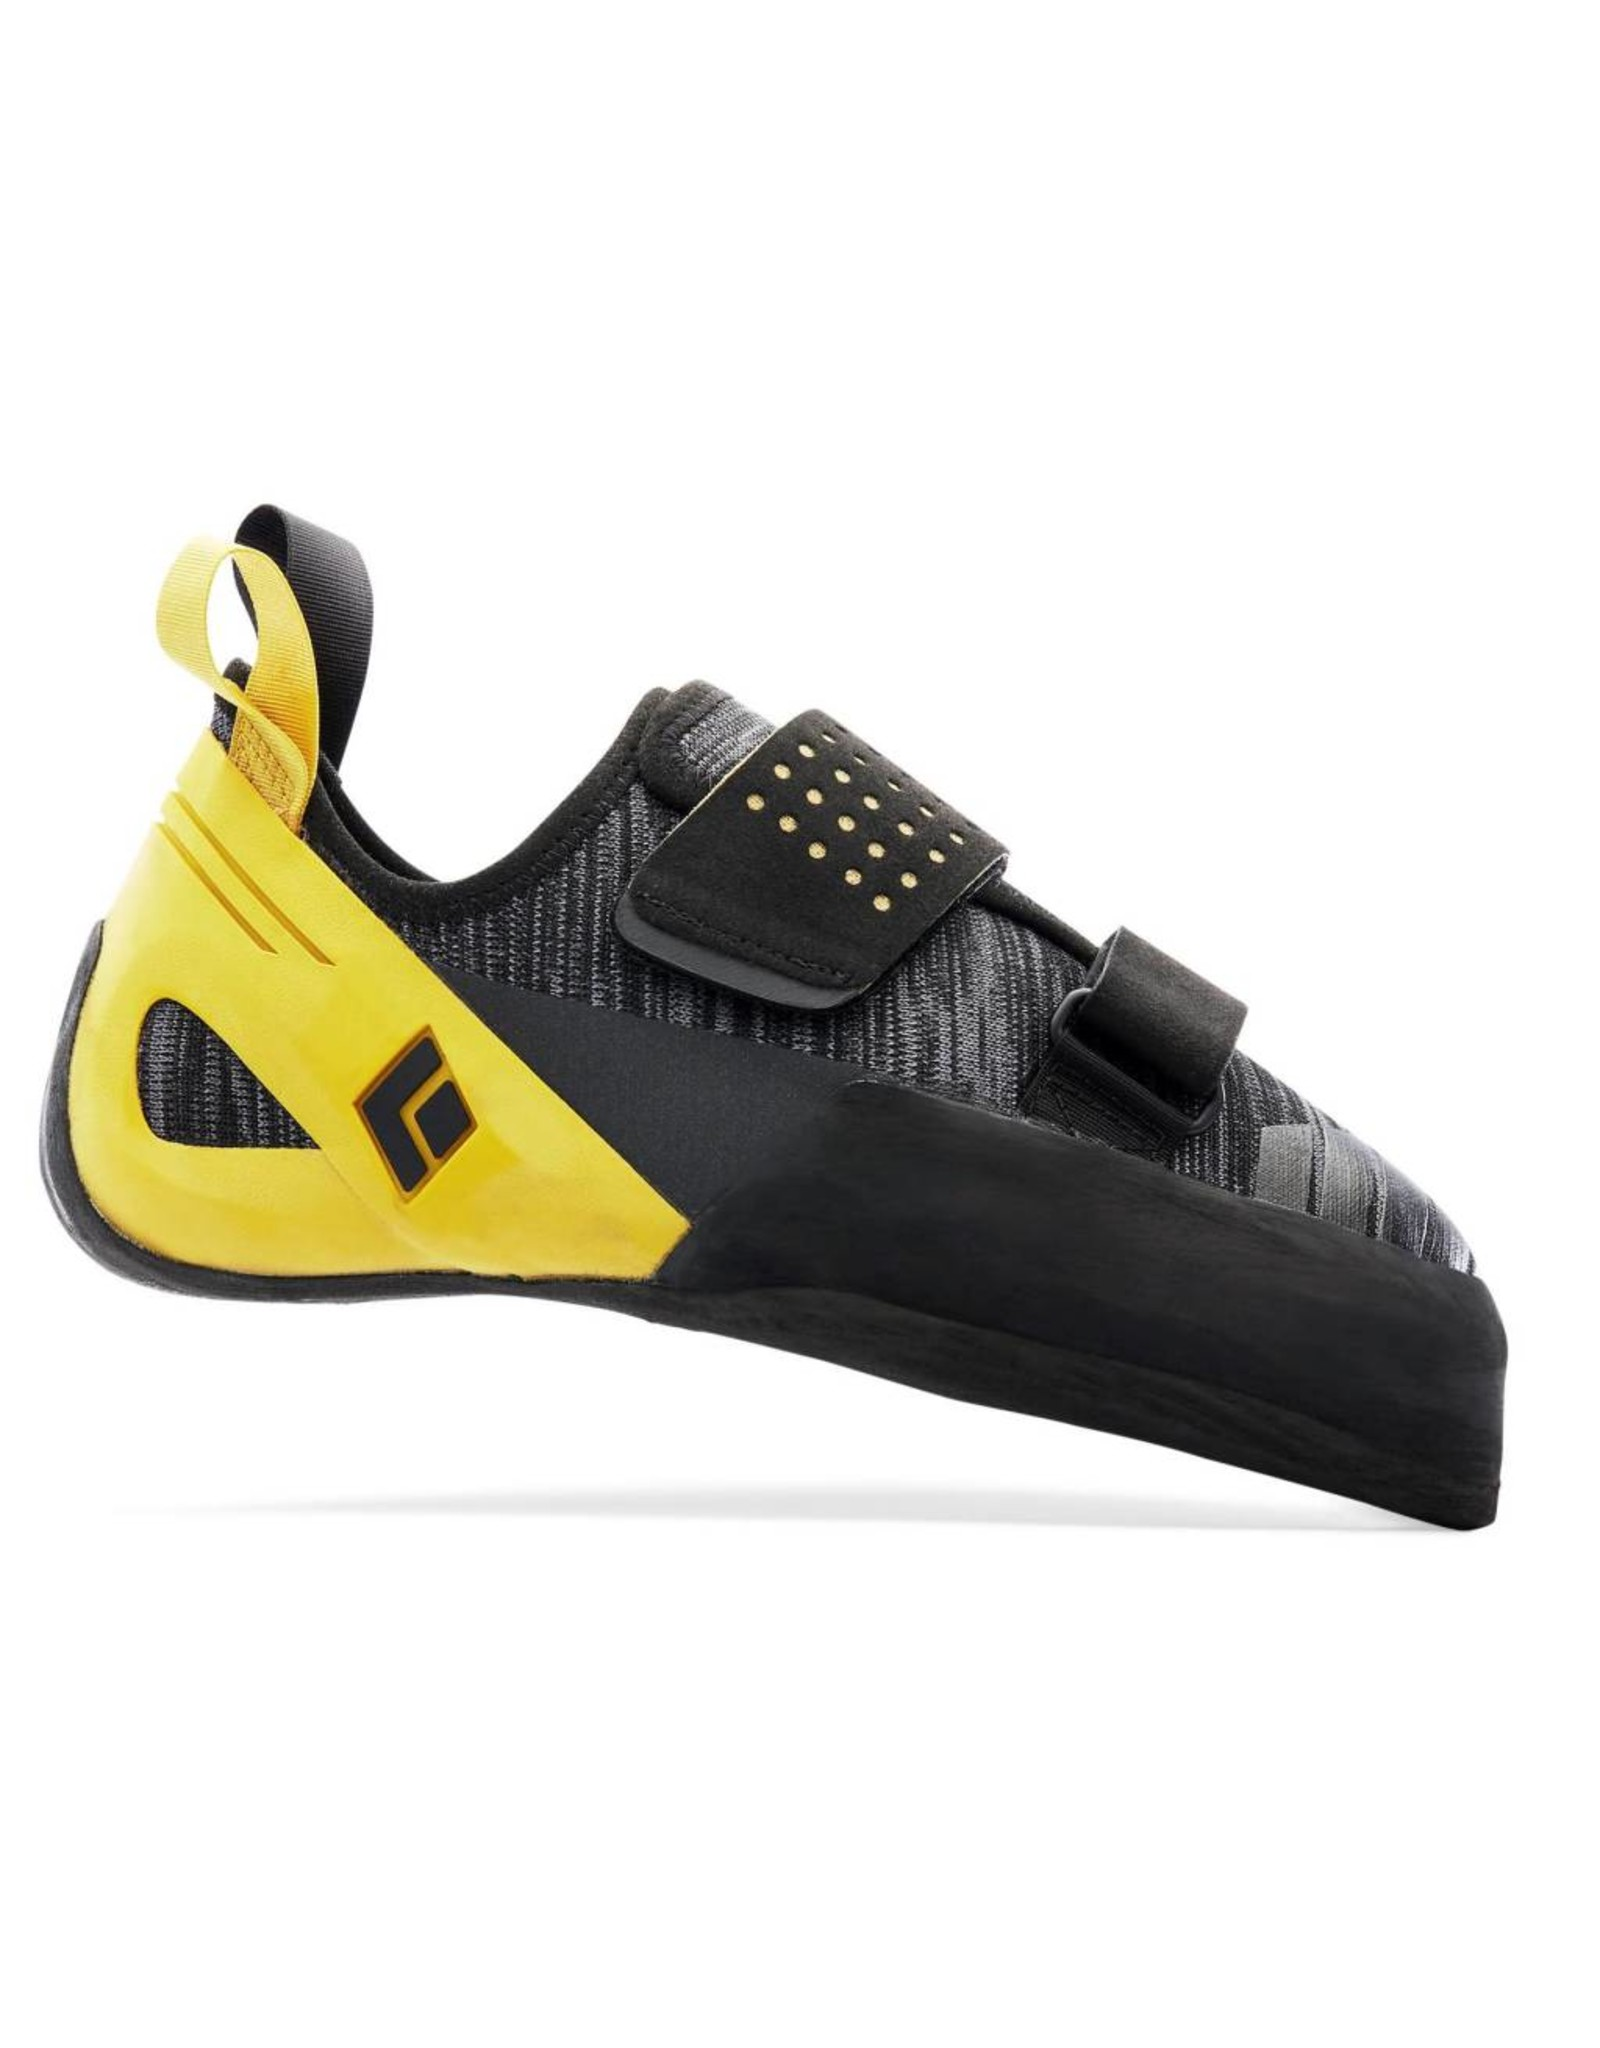 Black Diamond Black Diamond Zone Climbing Shoes